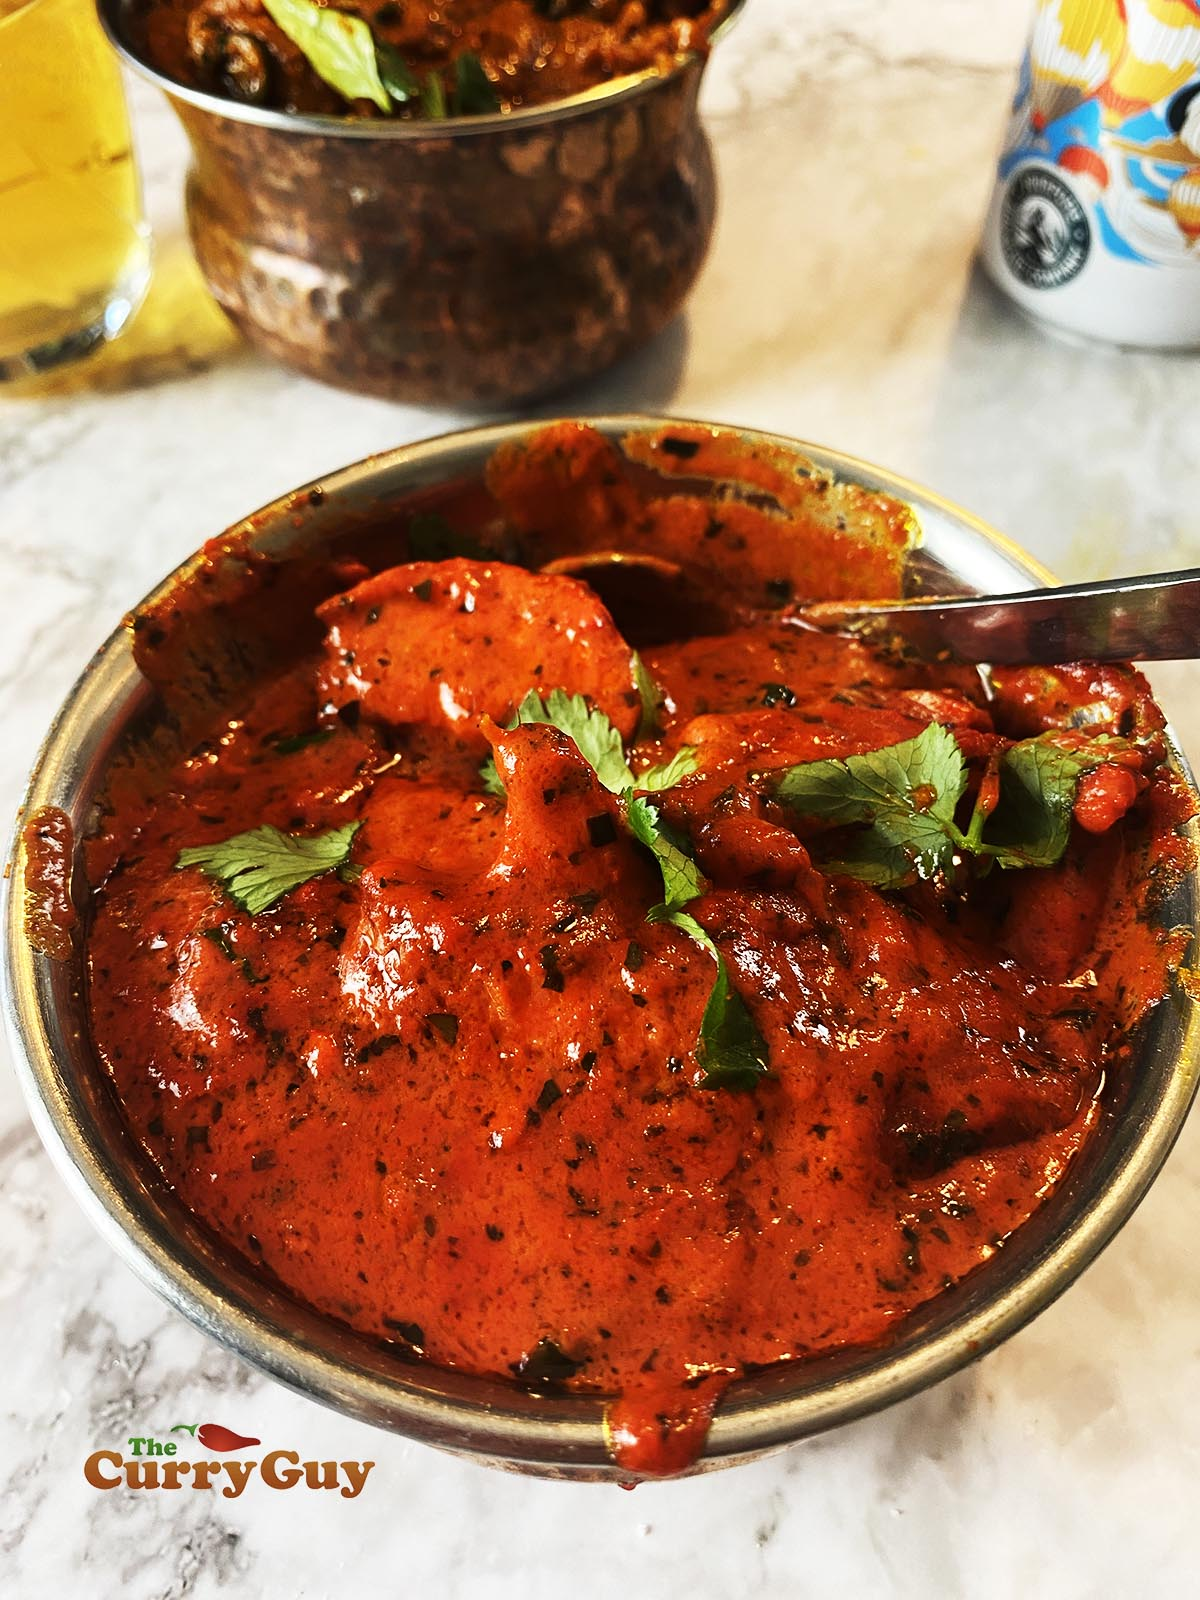 Chicken chasni curry